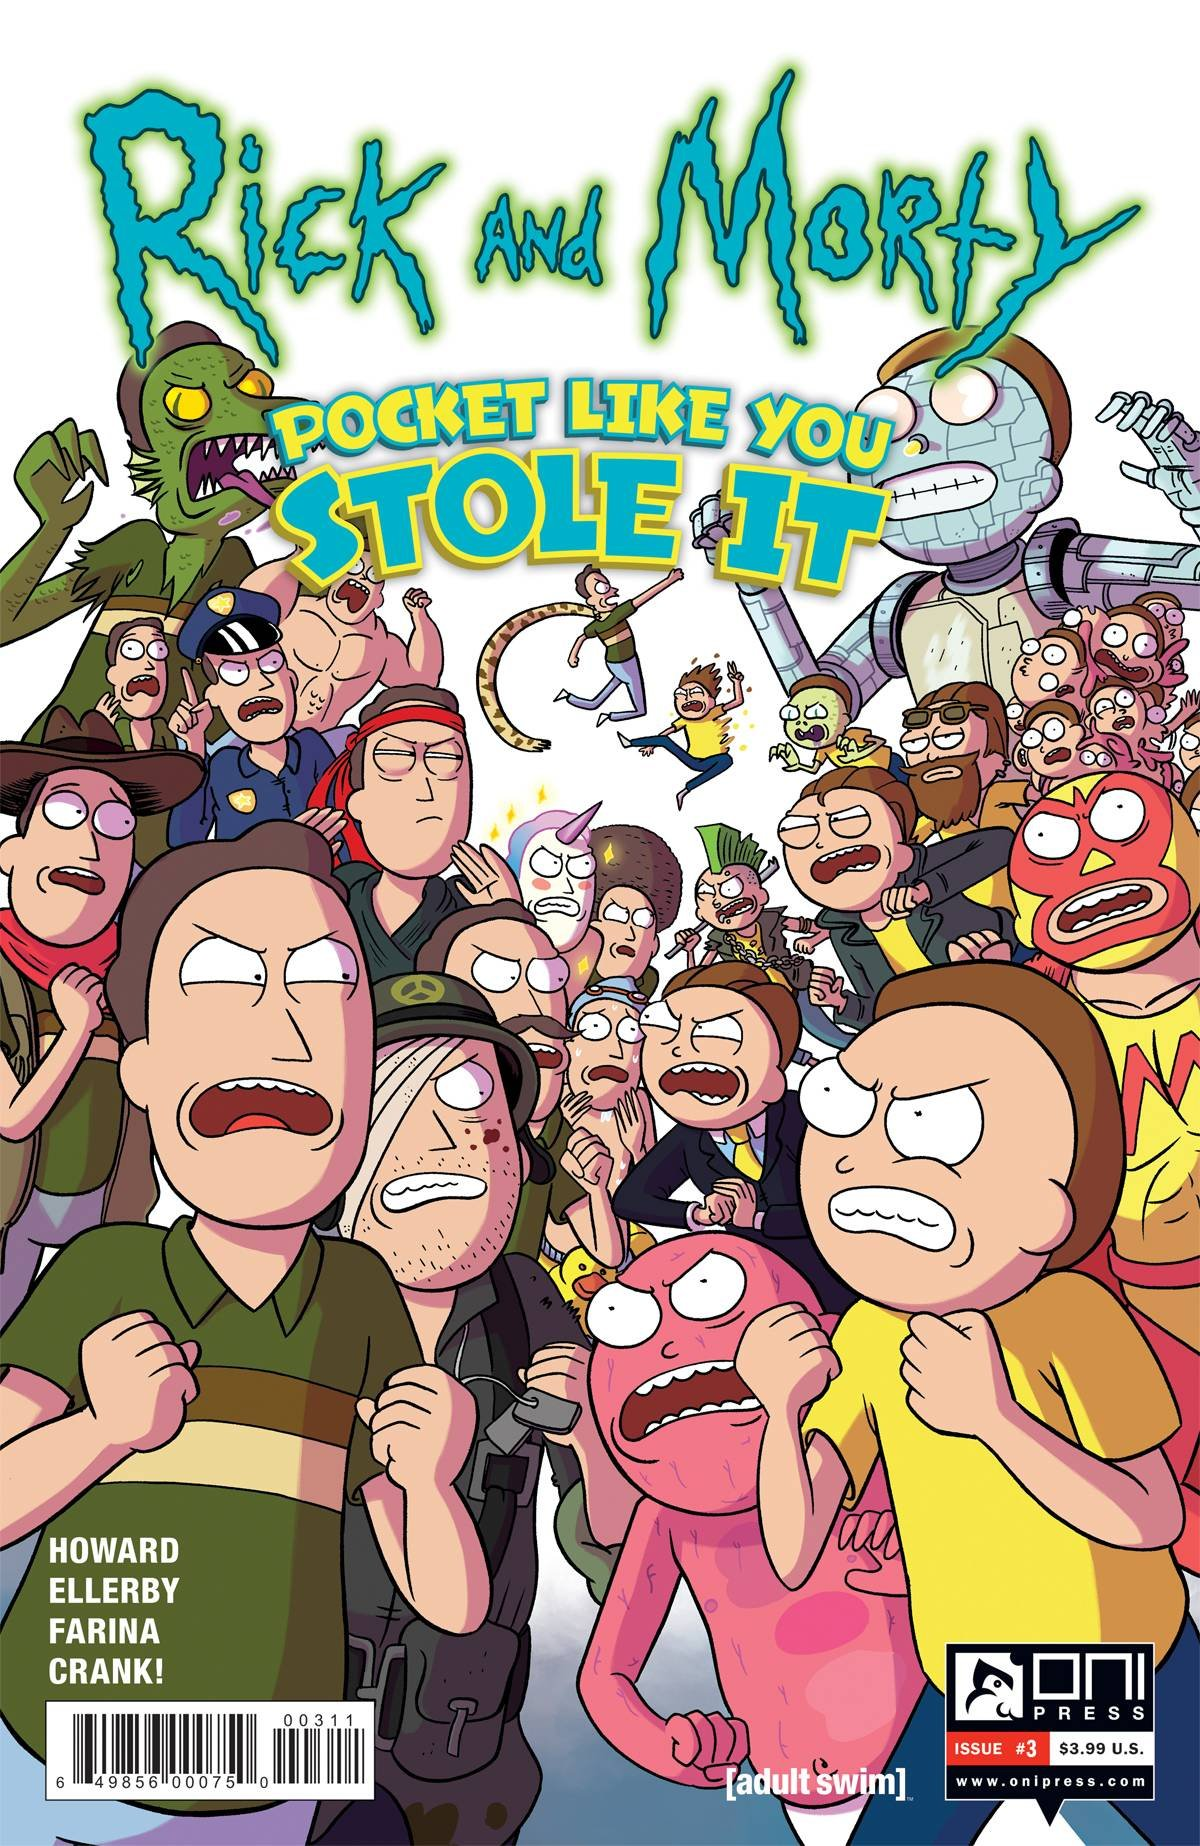 Download RICK & MORTY POCKET LIKE YOU STOLE IT #3 (OF 5) Release Date 9/13/17 ebook